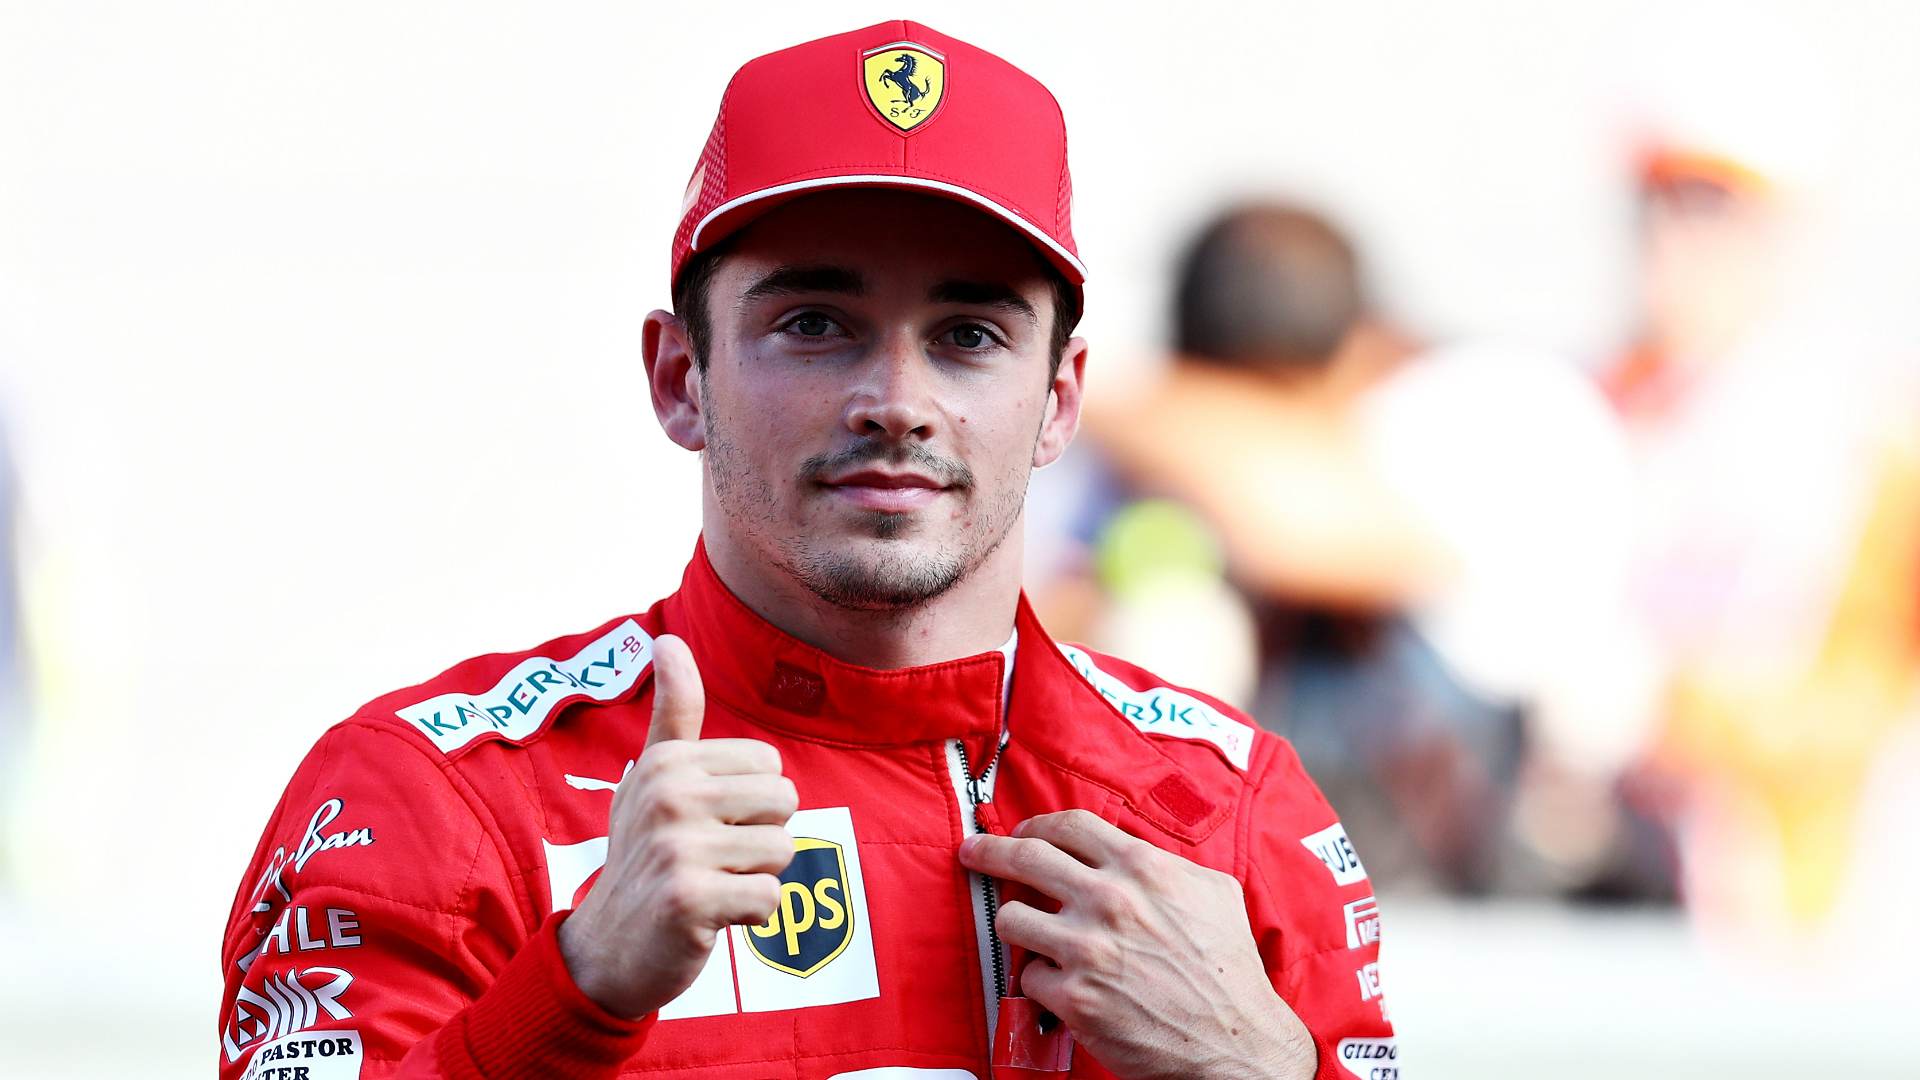 It's clear it wasn't clear! - Leclerc aims to move on from Ferrari confusion